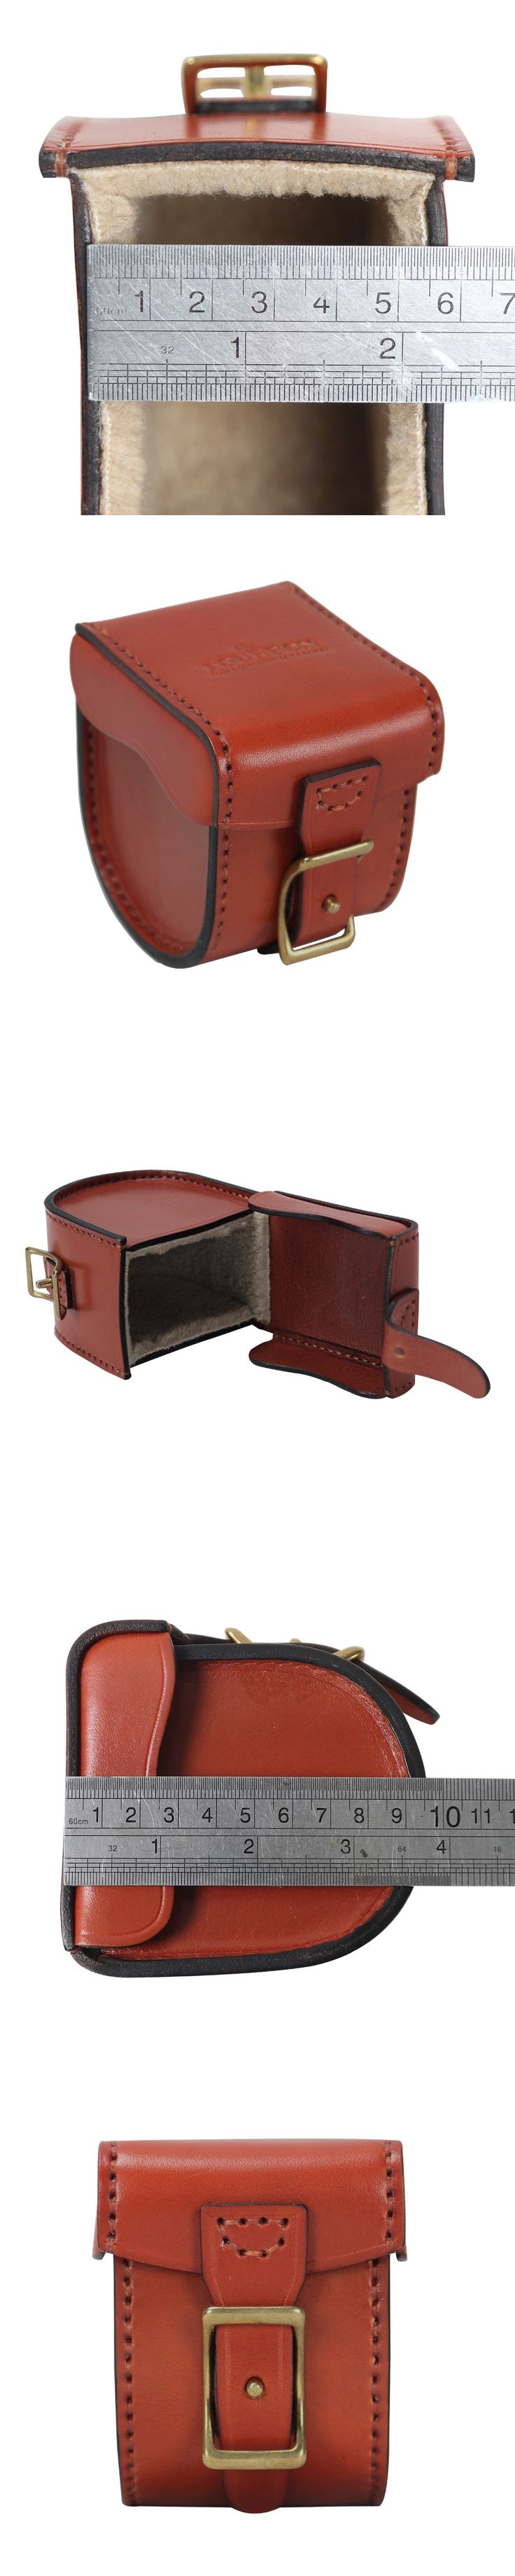 Tourbon Fishing Reel Case Vintage Vegetable Leather Thick Padded Carrier Brown  Fly Fishing Accessories for Fisher